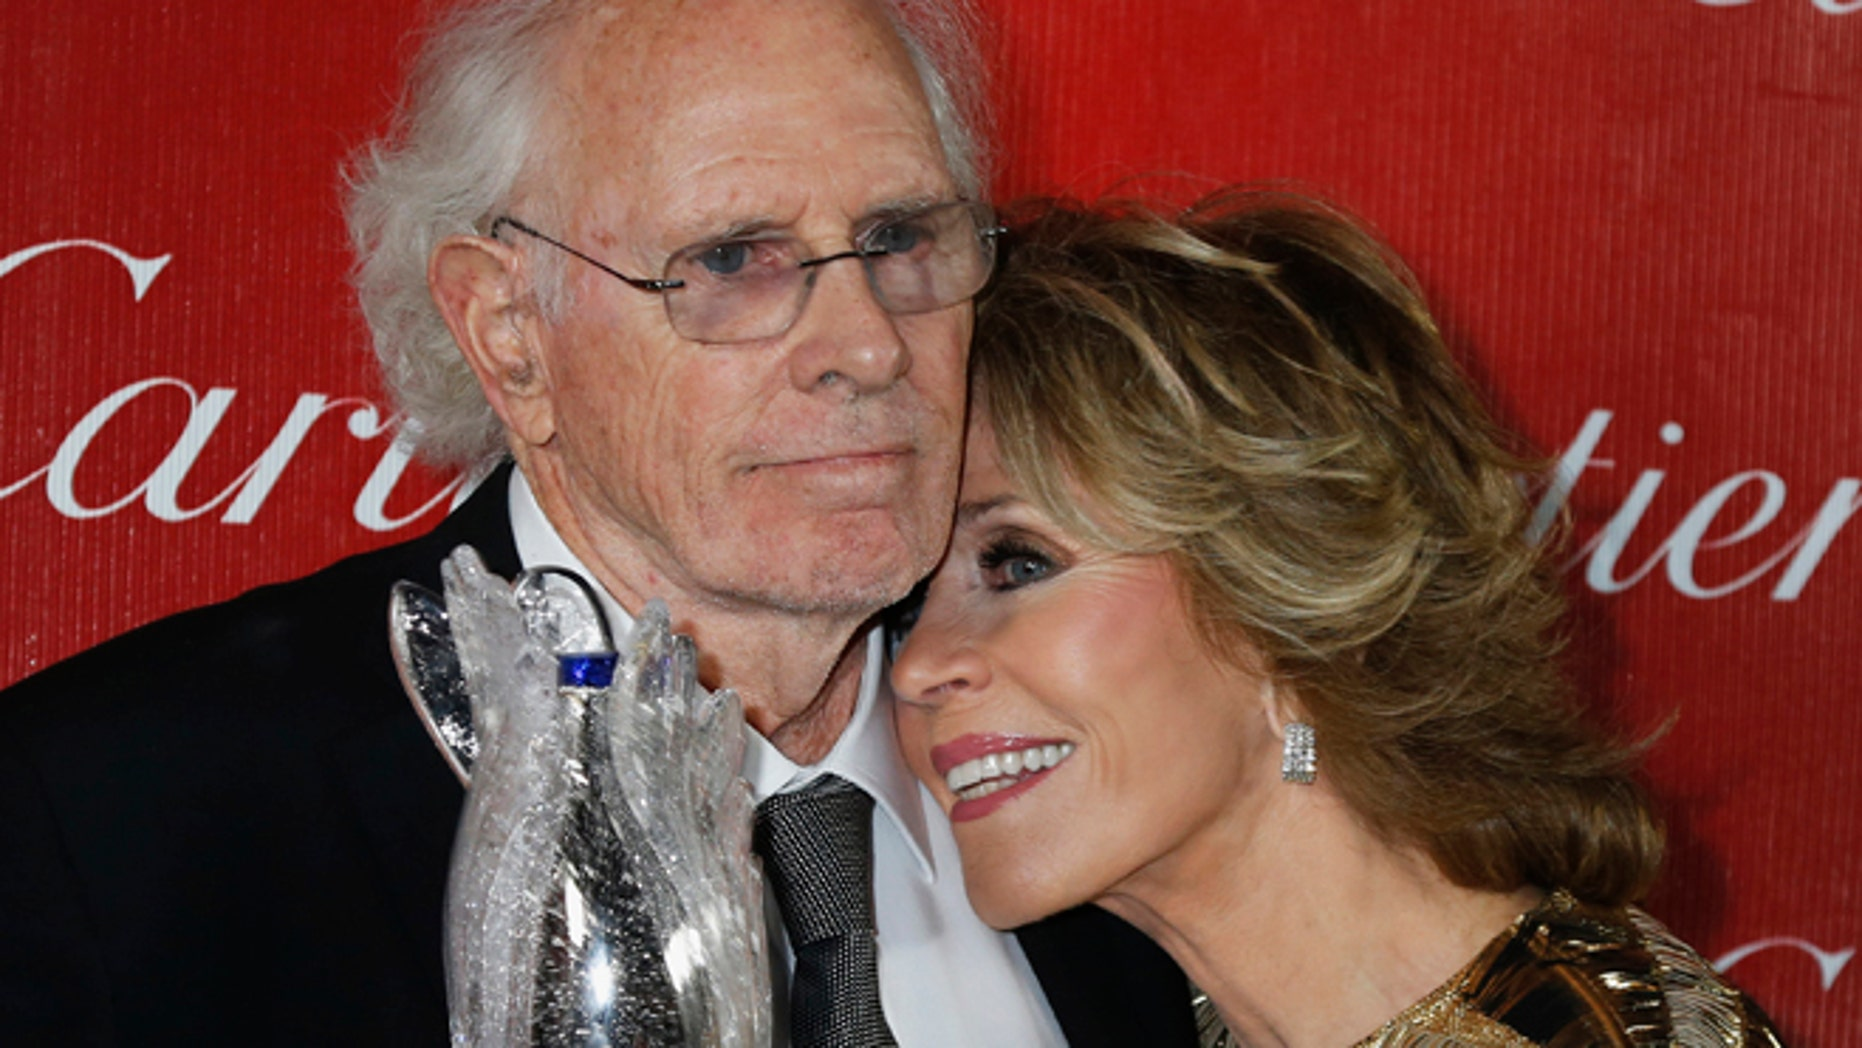 """Presenter Jane Fonda leans her head on shoulder of actor Bruce Dern, star of the film """"Nebraska"""" who received a Career Achievement Award at the 2014 Palm Springs International Film Festival Awards Gala in Palm Springs, California January 4, 2014.  REUTERS/Fred Prouser (UNITED STATES - Tags: ENTERTAINMENT) - RTX172PP"""